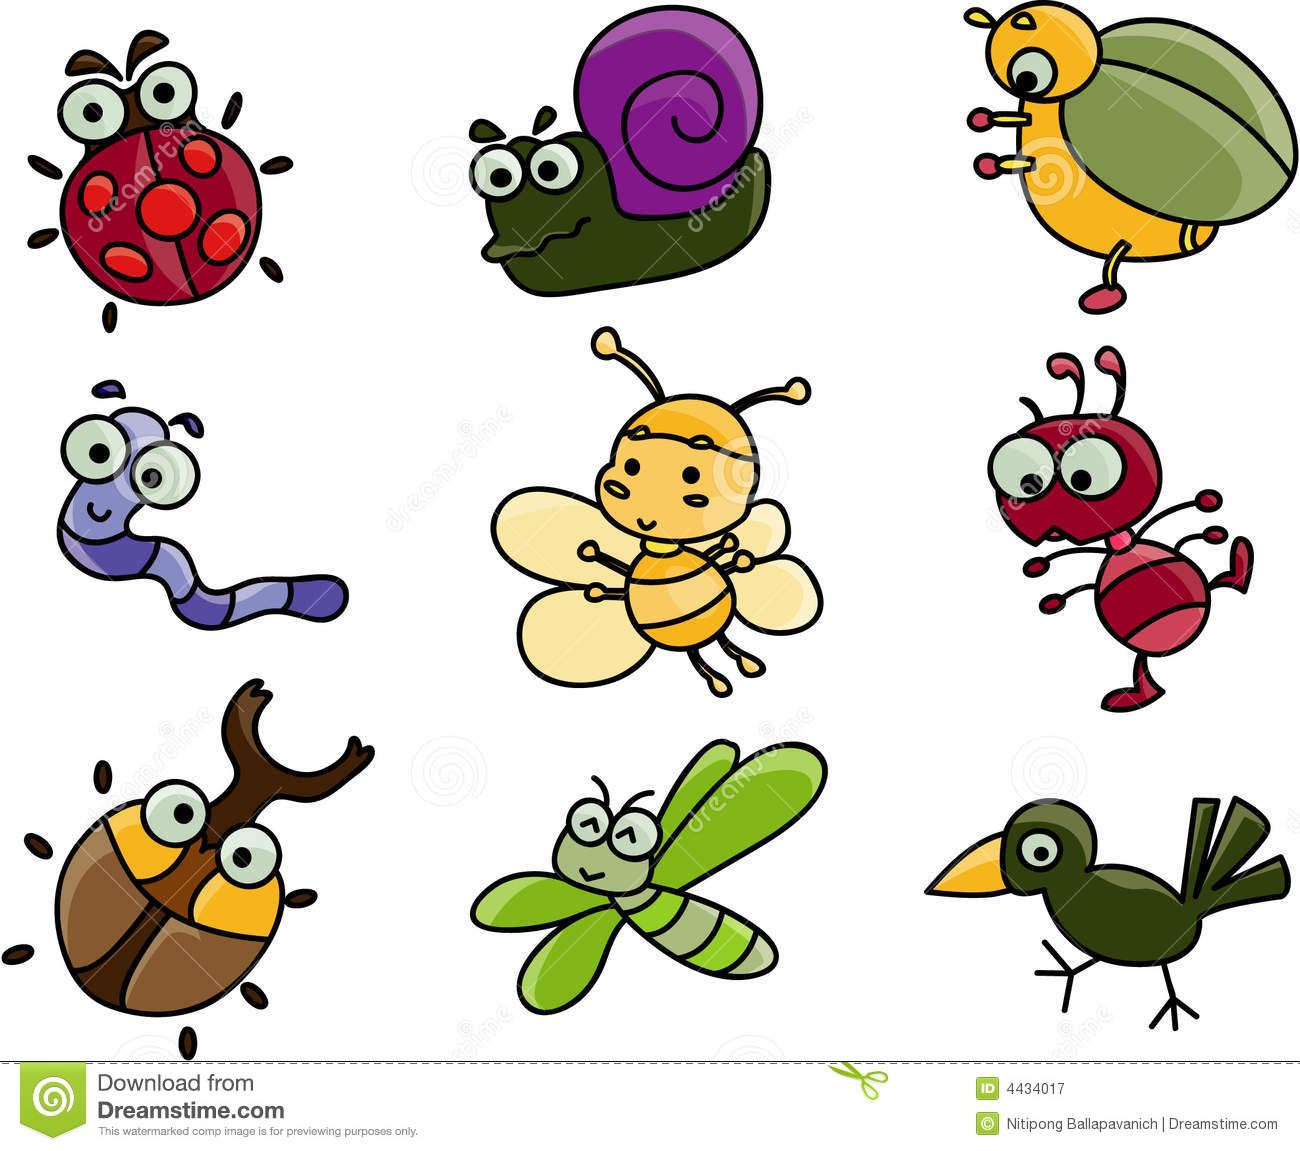 Clipart collection - .-Clipart collection - .-7